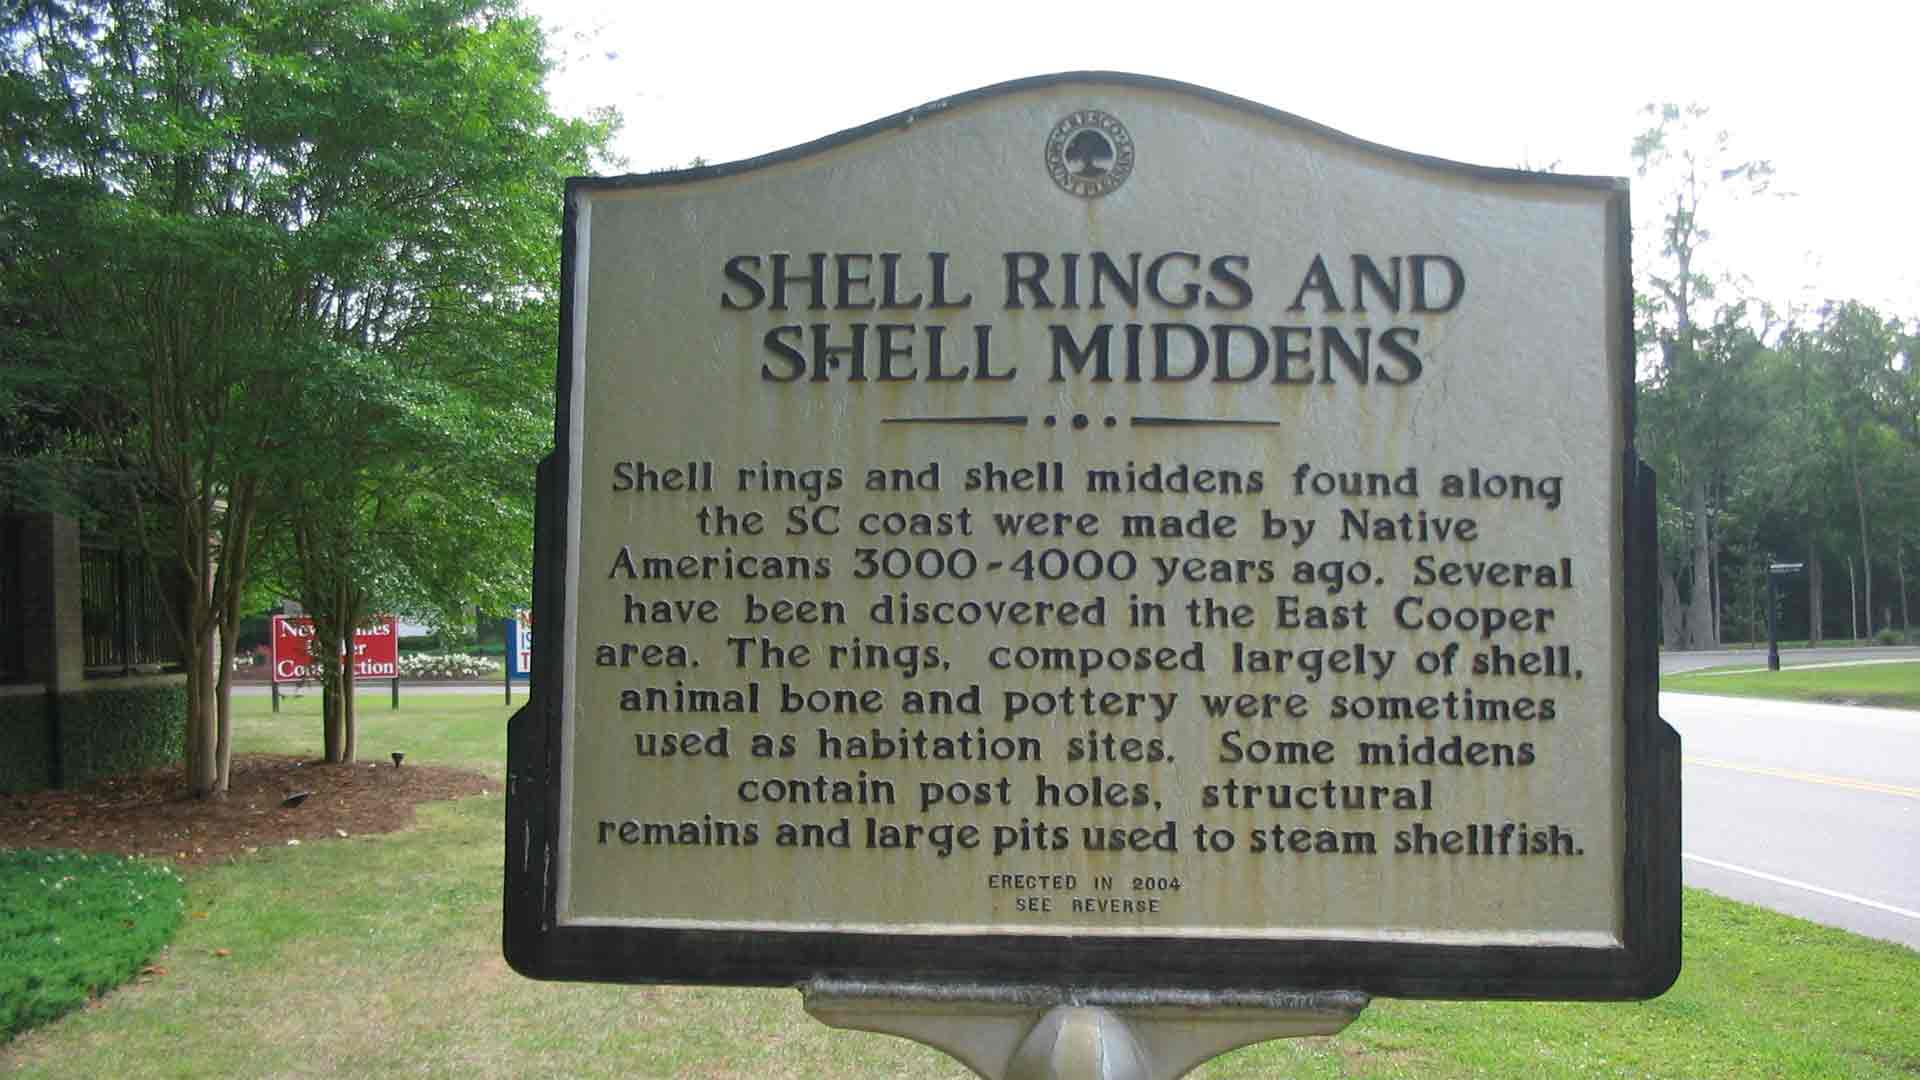 Historical Marker for shell rings and middens in Mt Pleasant